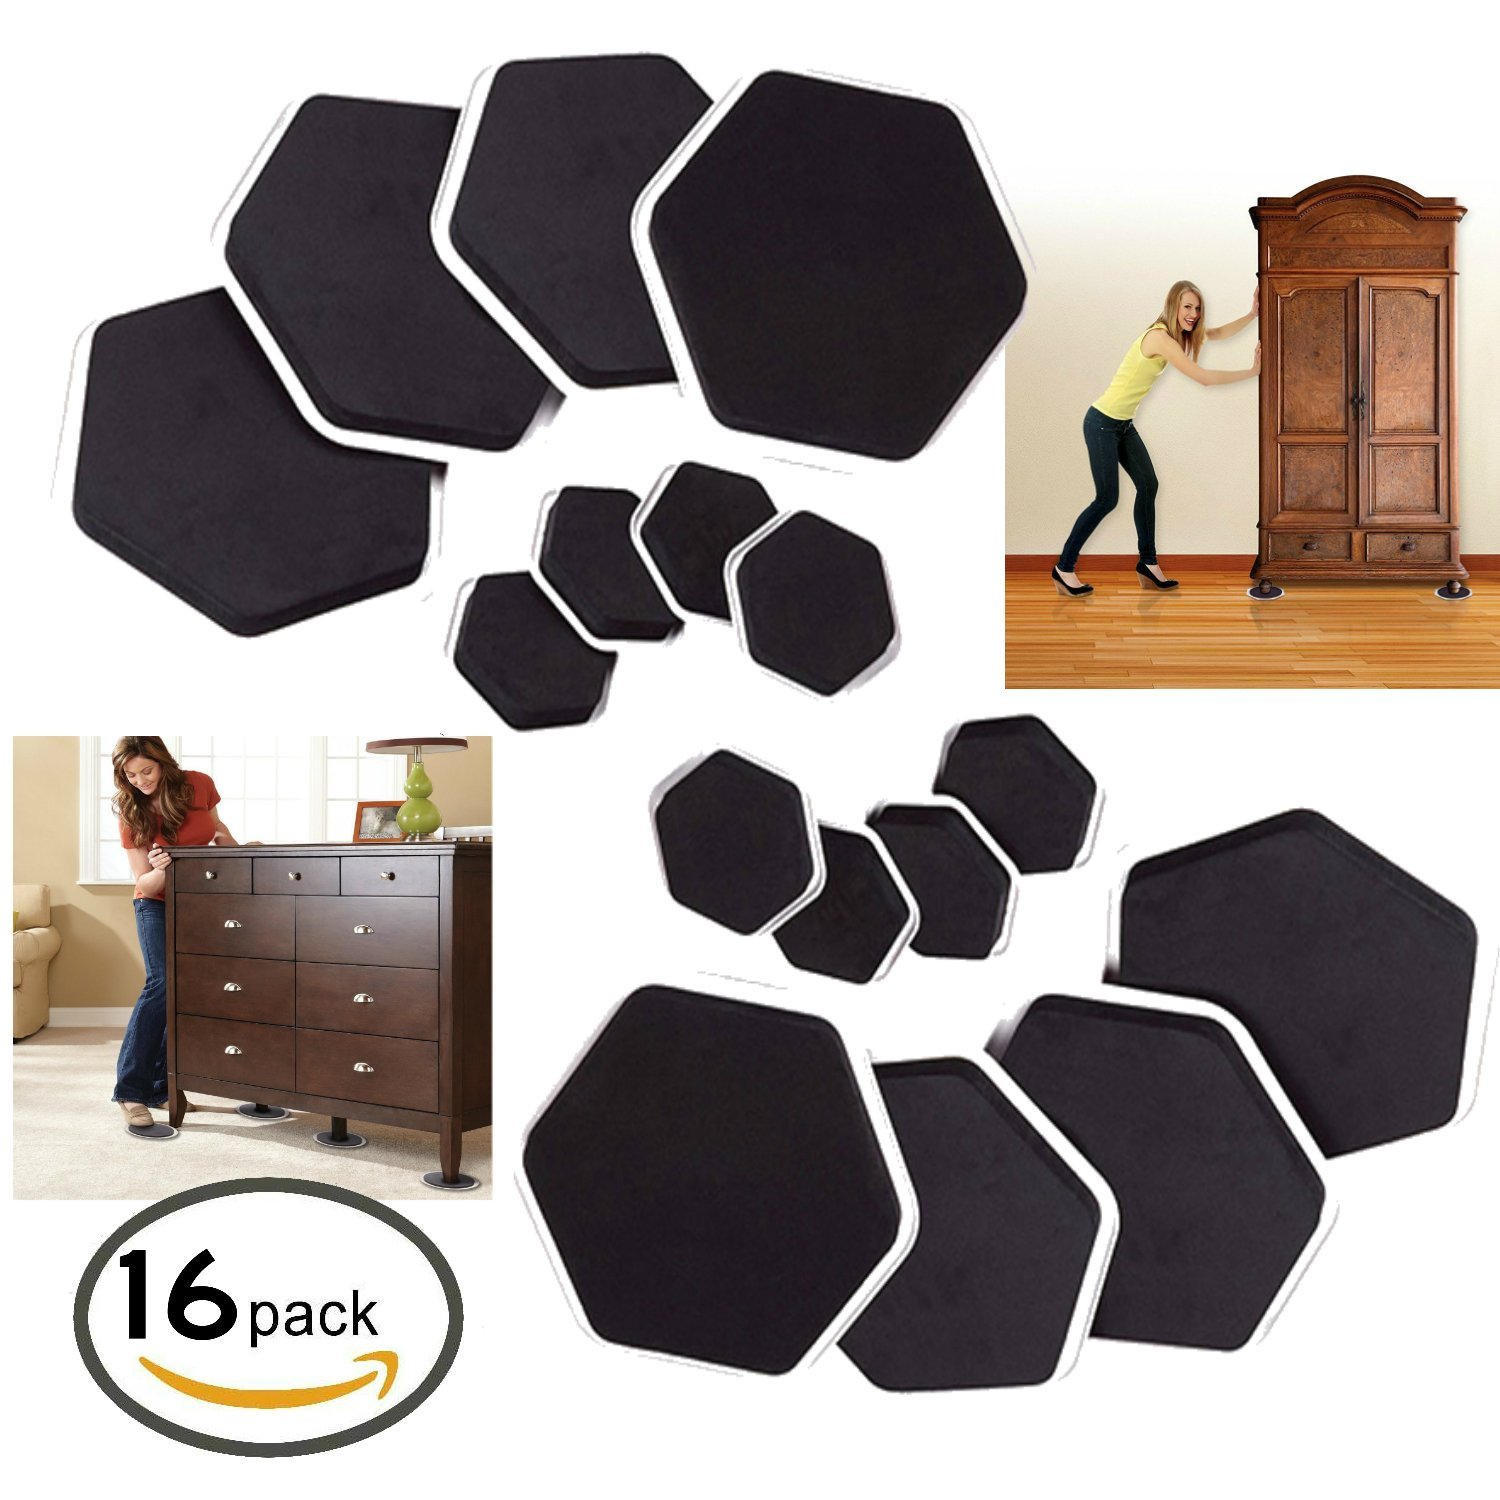 Furniture Moving Sliders and Feet Pads 16 Pc For Moving Furniture